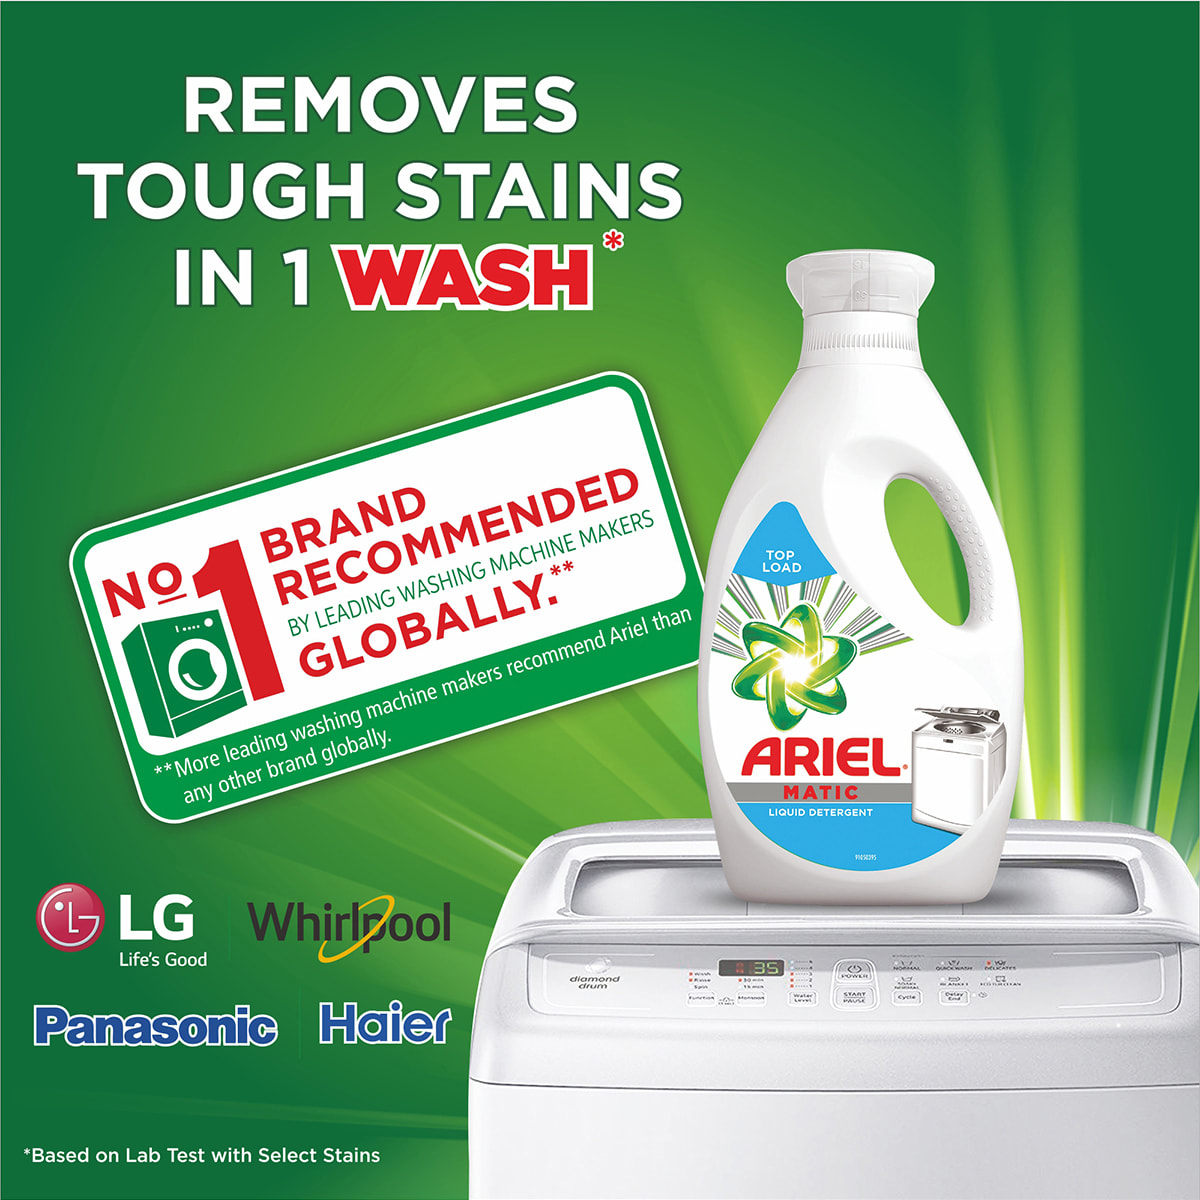 Ariel is the no. 1 brand recommended by leading washing machine makers globally and removes though stains in 1 wash